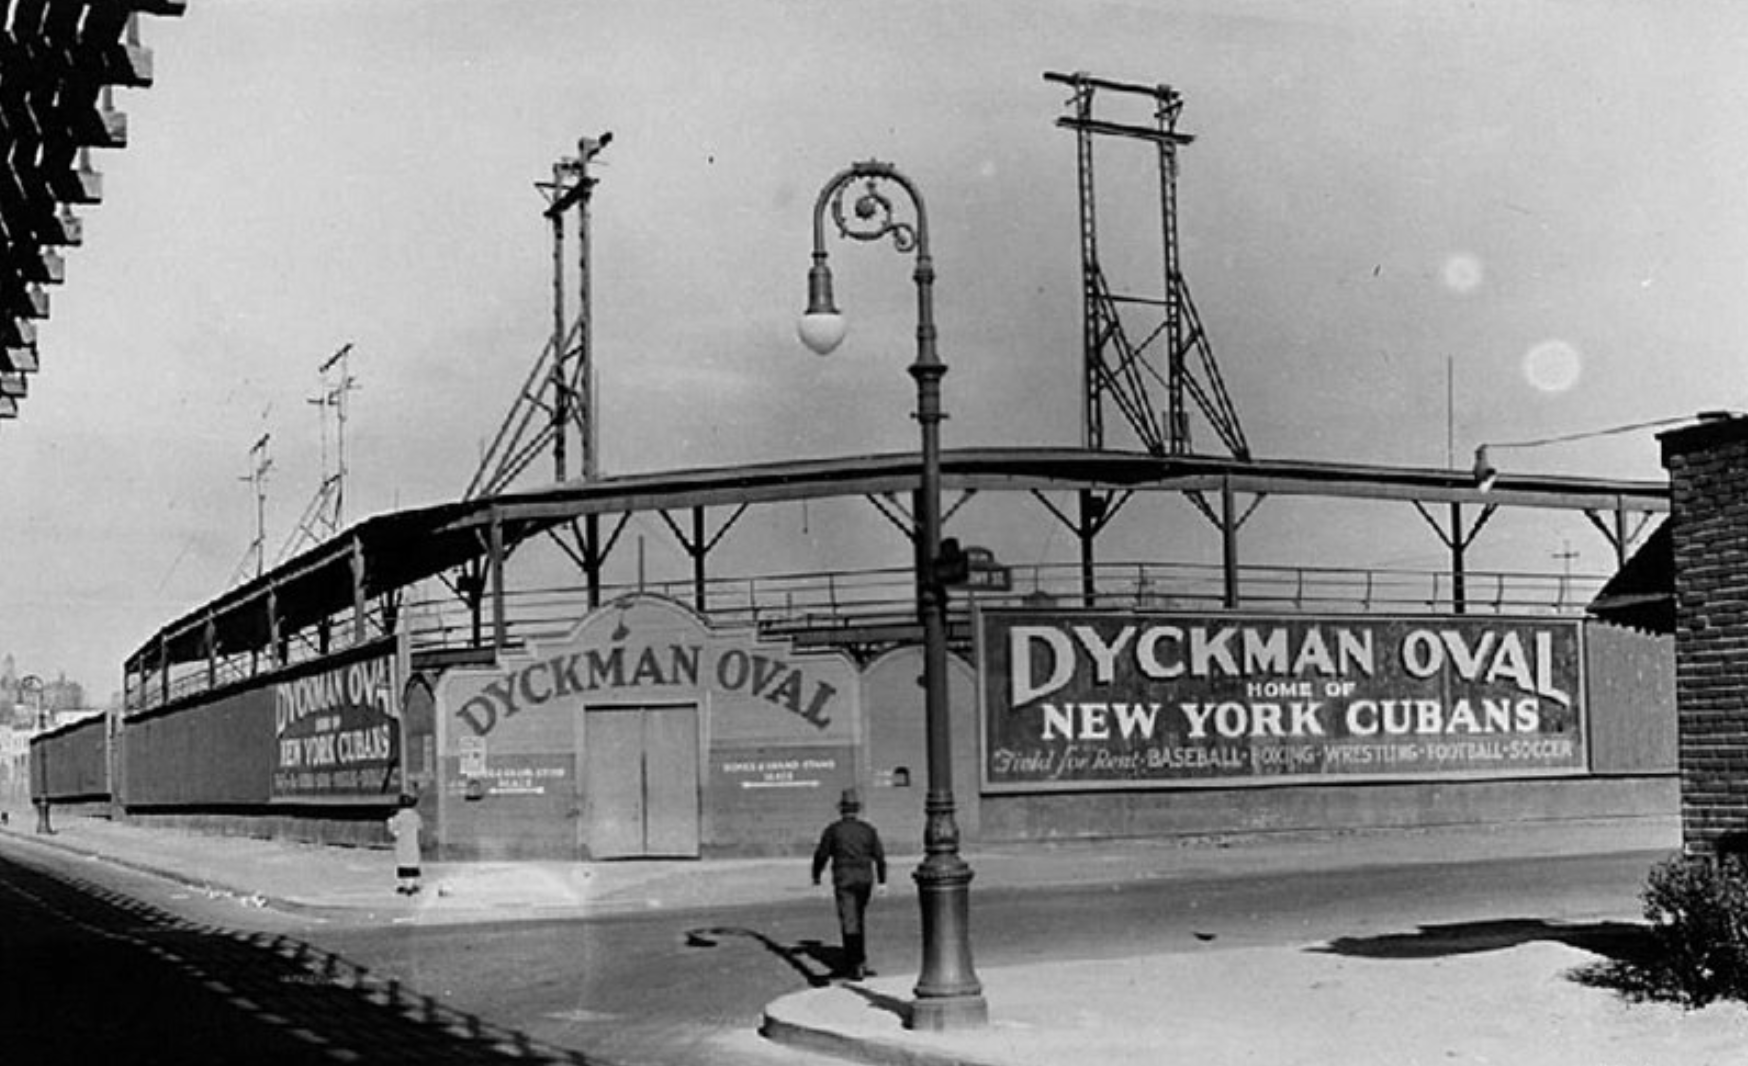 Dyckman Oval, Harlem, New York, 1932